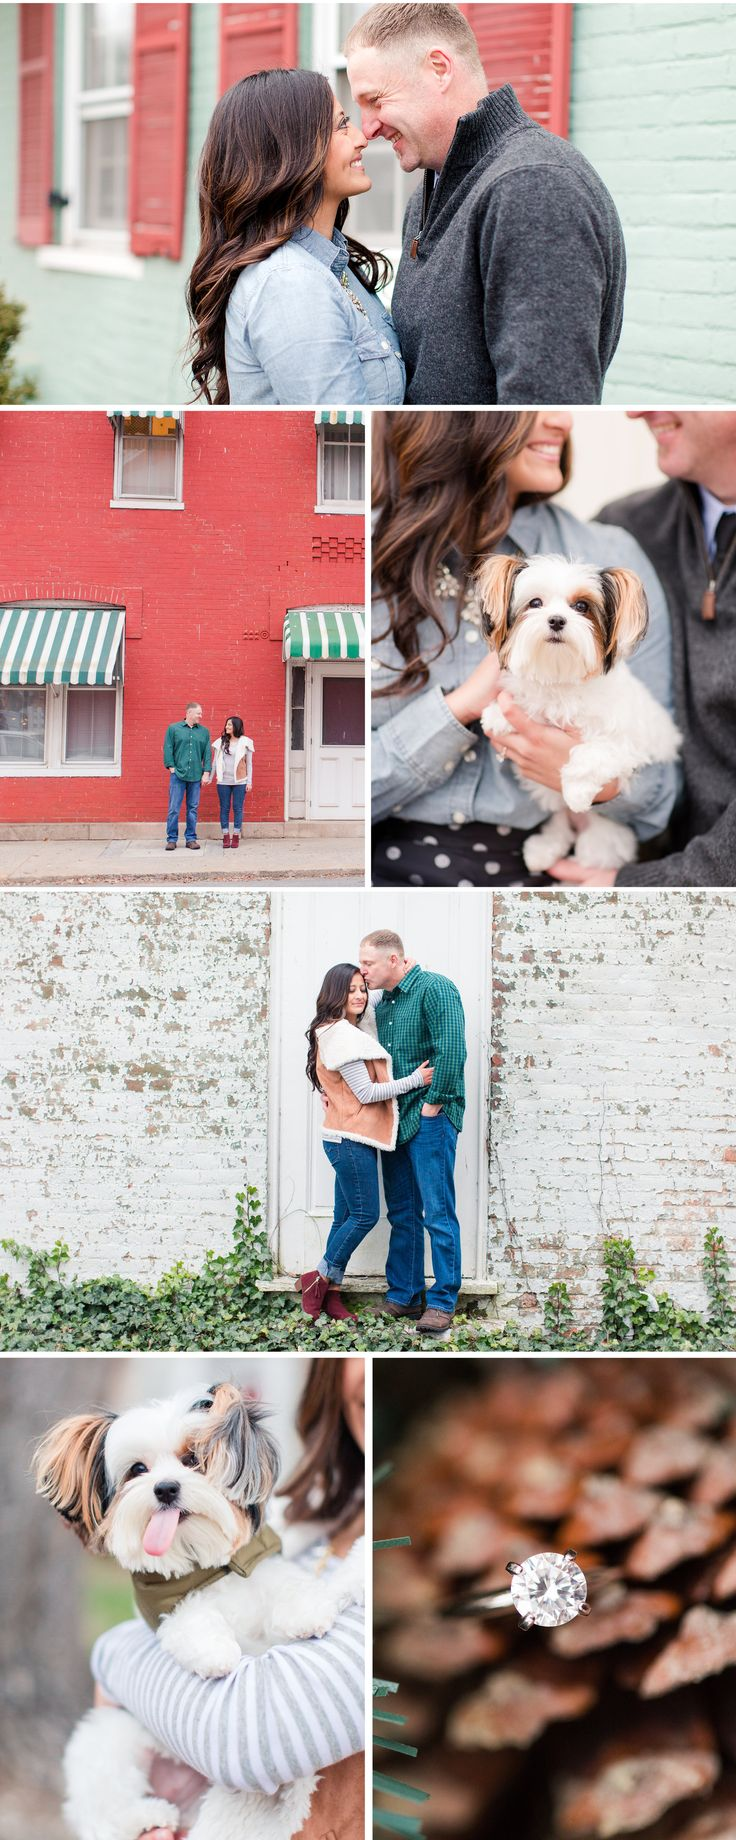 A Downtown Shepherdstown Engagement Shoot with a Puppy | by Katelyn James Photography